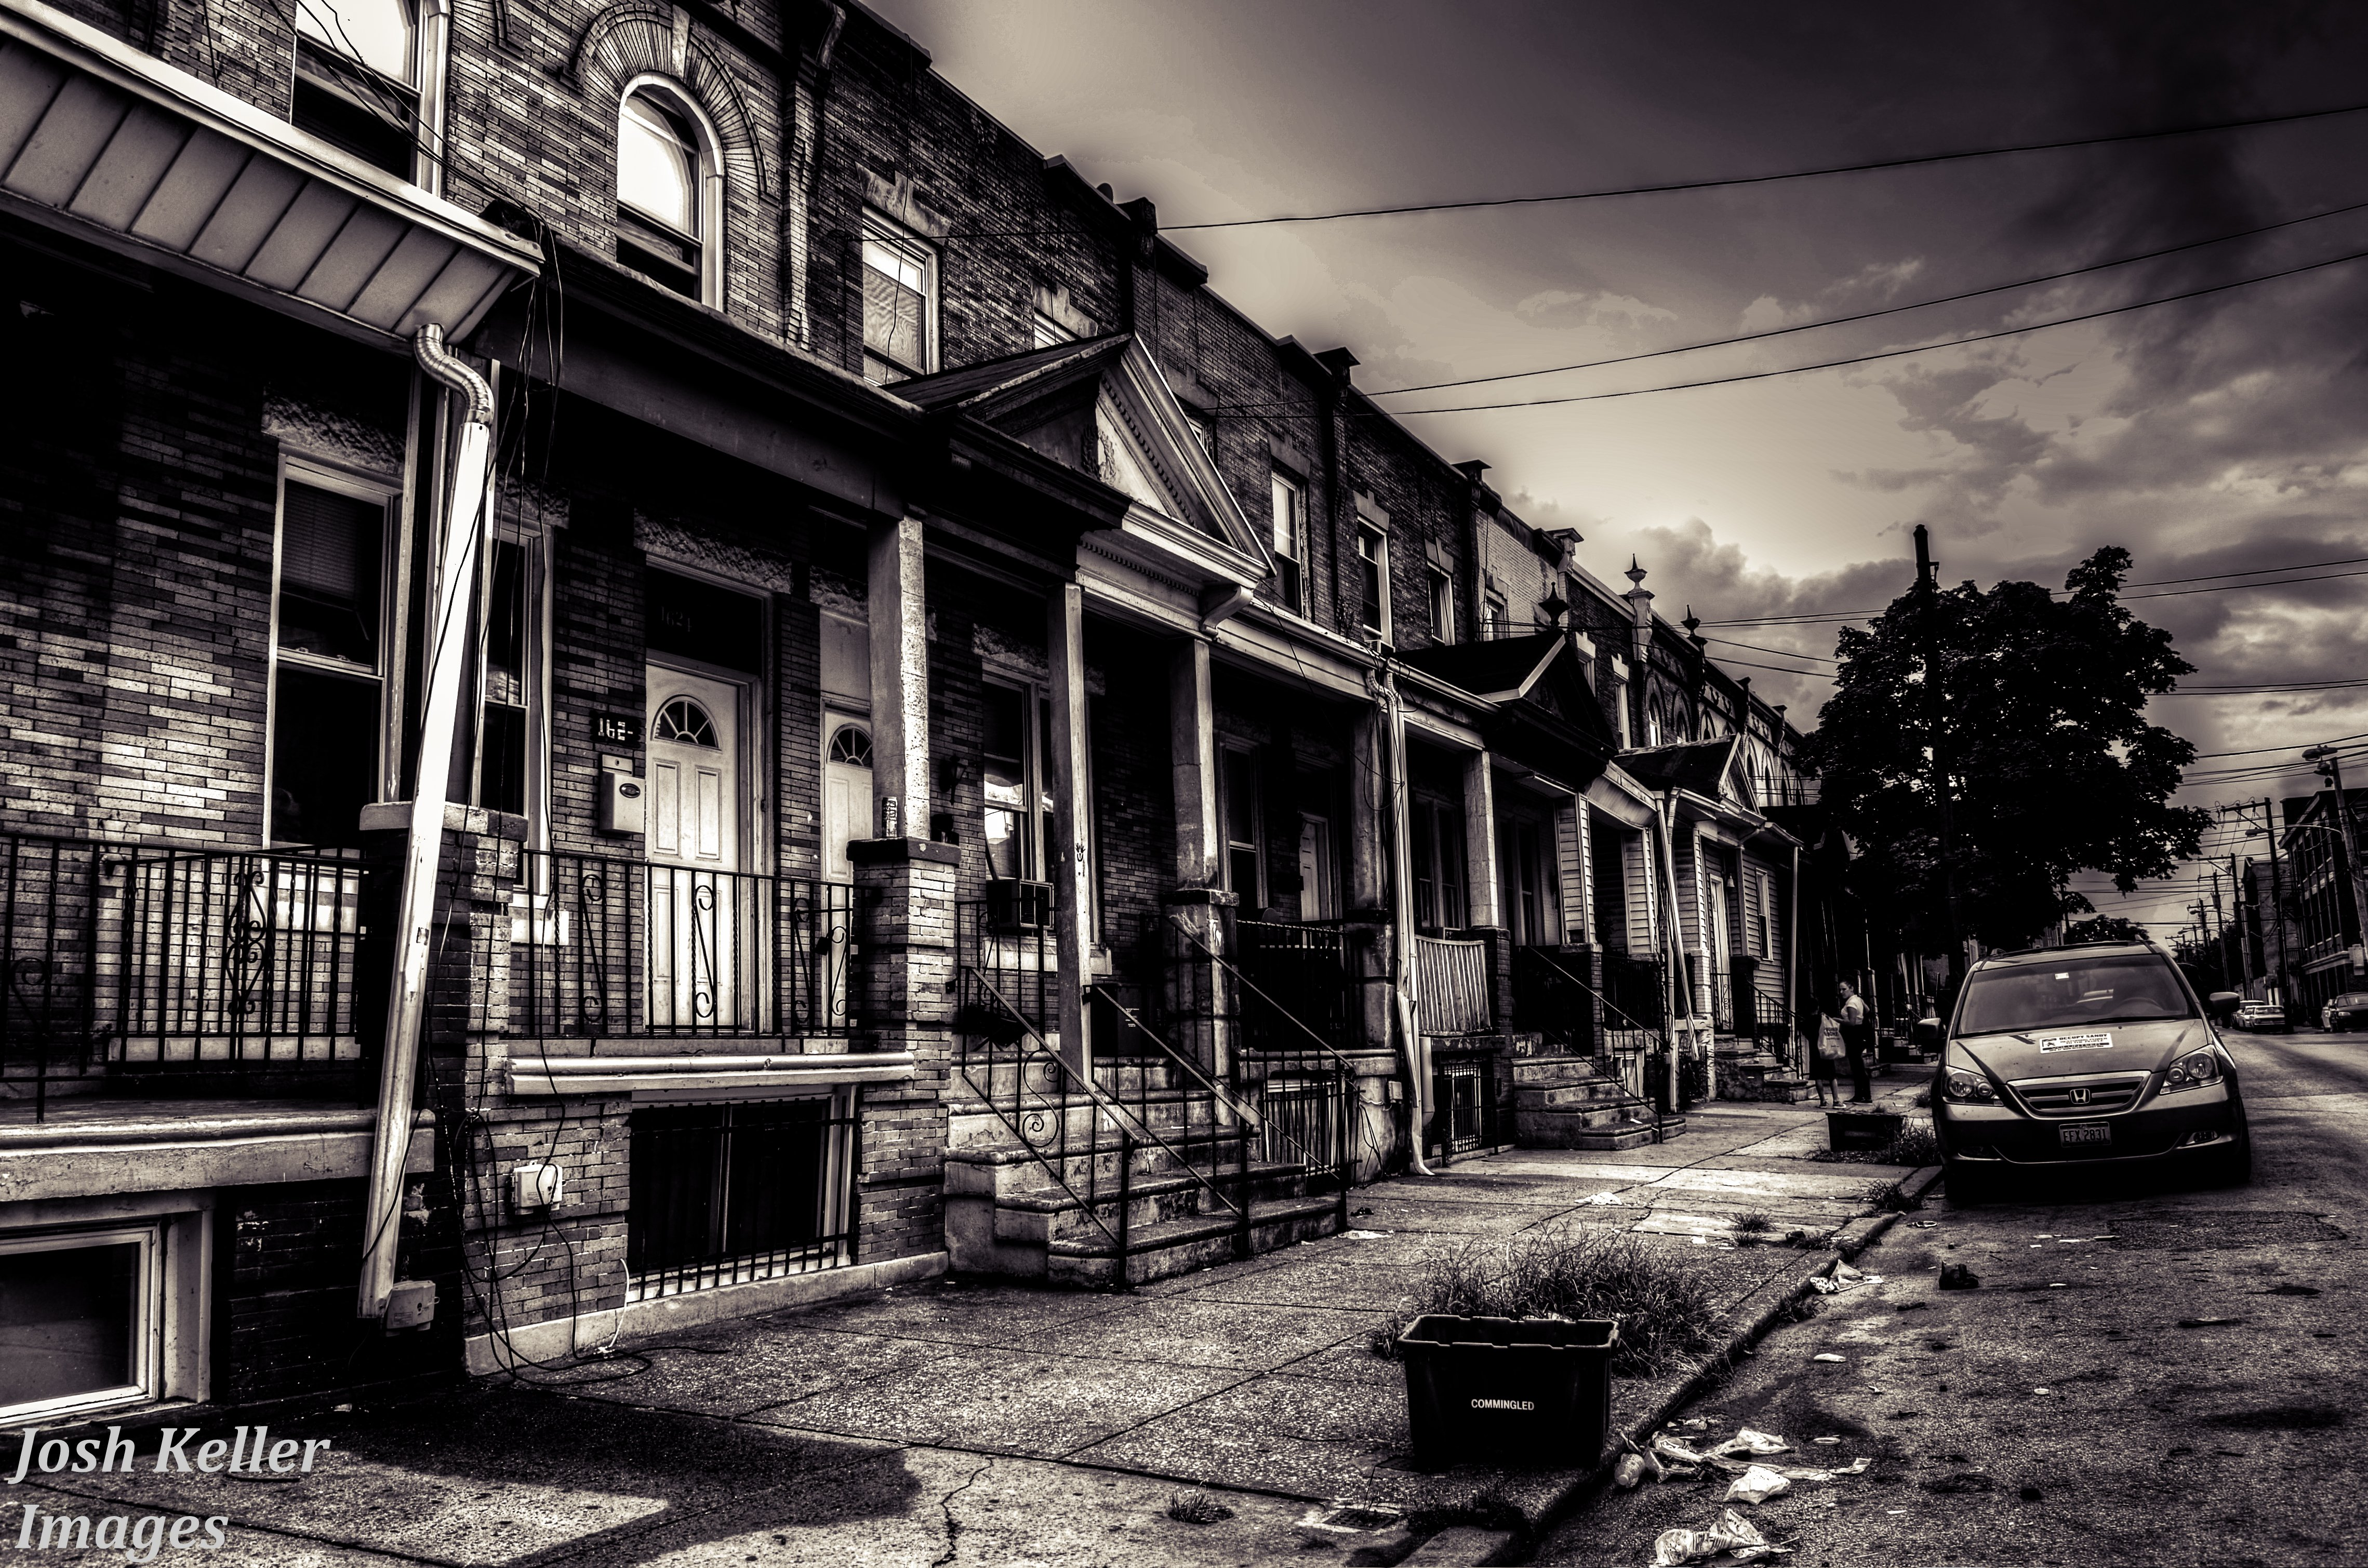 ghetto street backgrounds - photo #2